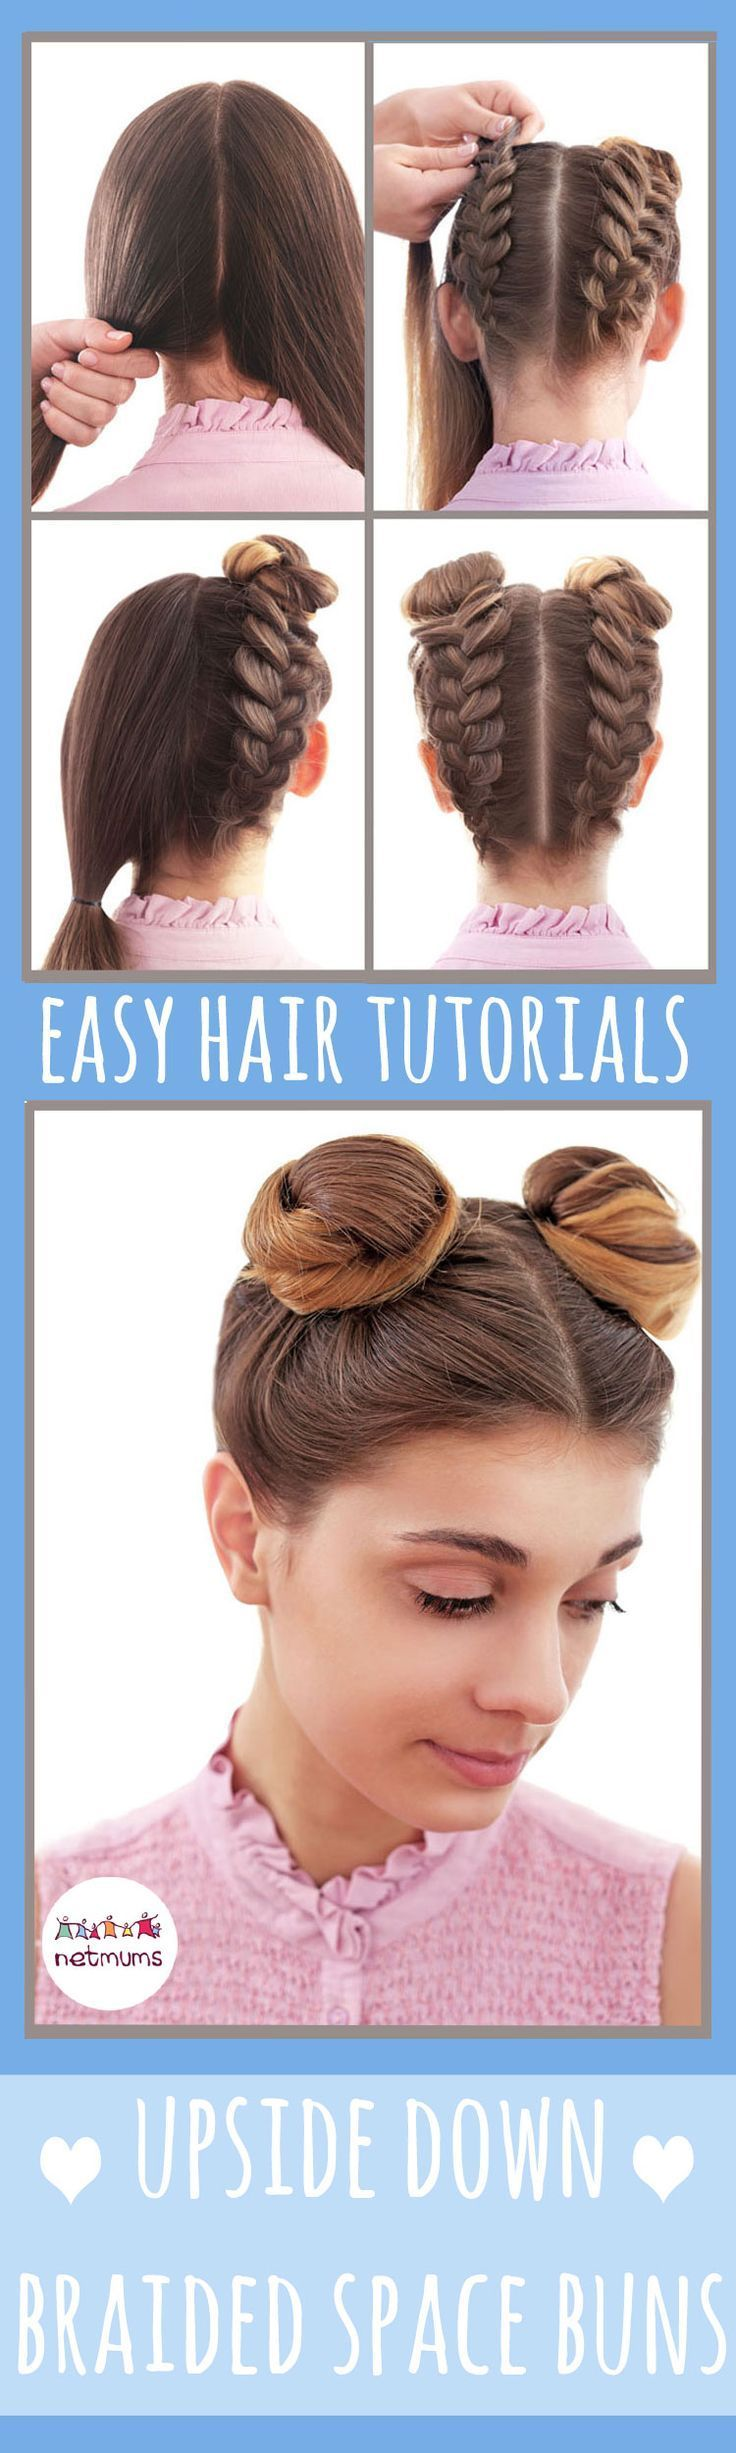 Simple hair tutorials stayli qzh pinterest easy hairstyles